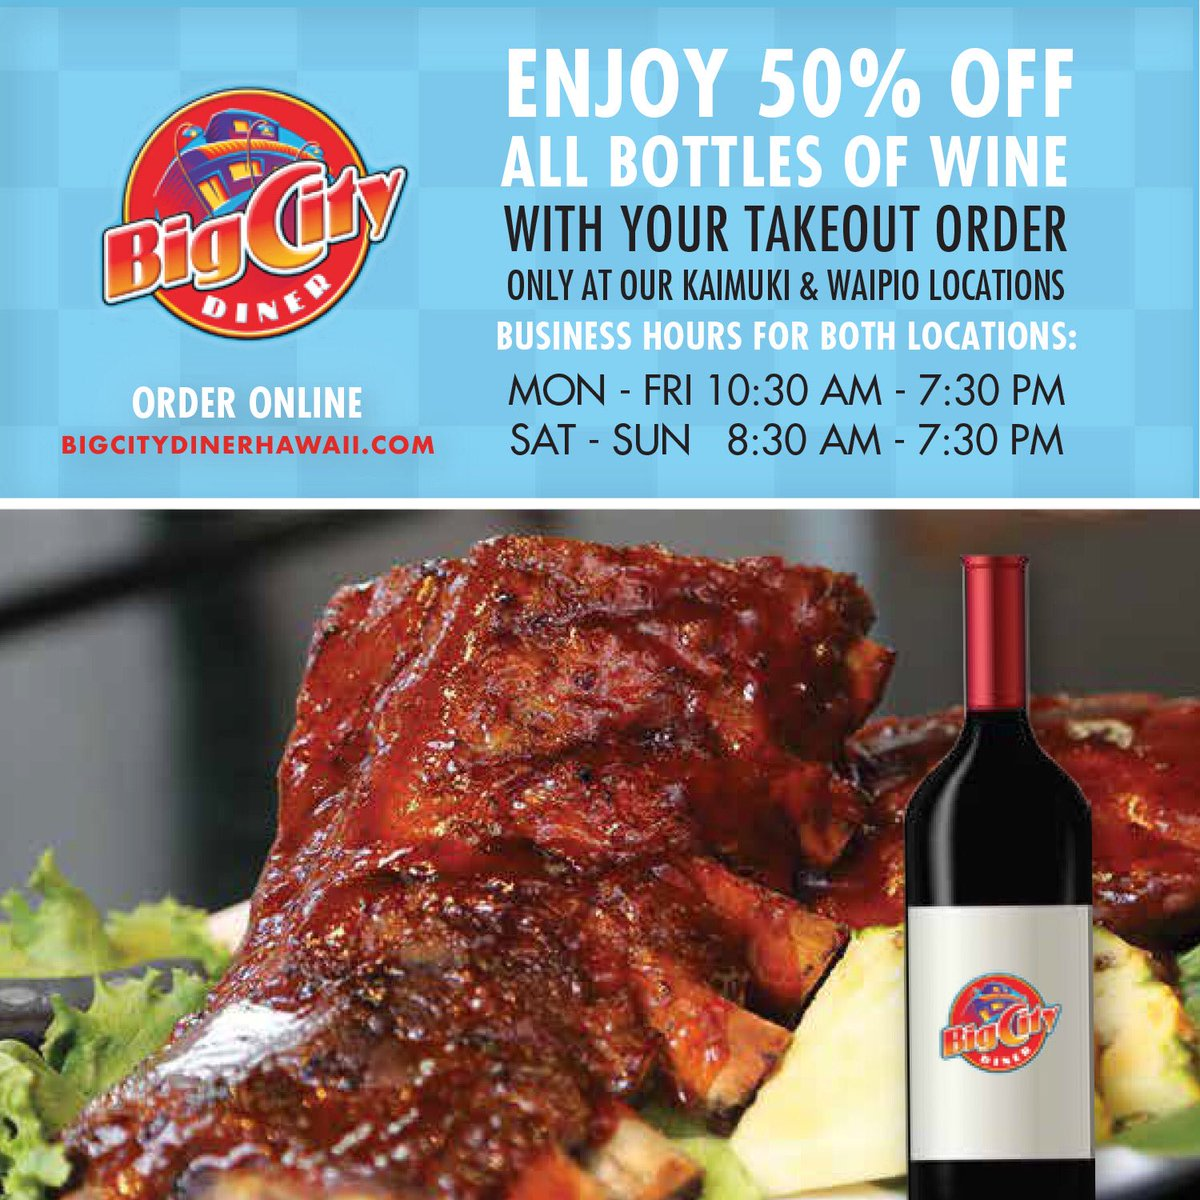 Join us for a @BigCityDiner kind of night! At @Pearlridge @KailuaNEWS @KaimukiHi or @WaipioCenter #BigCityDiner #KaimukiEATS #WaipioCenter #FoodAGoGo #TakeOut #Delivery #Wine #Lunch #Dinner #Steaks #Fish #Vegetarian #Yum #Fresh #Hawaii                     https://t.co/aT50RzWKL5